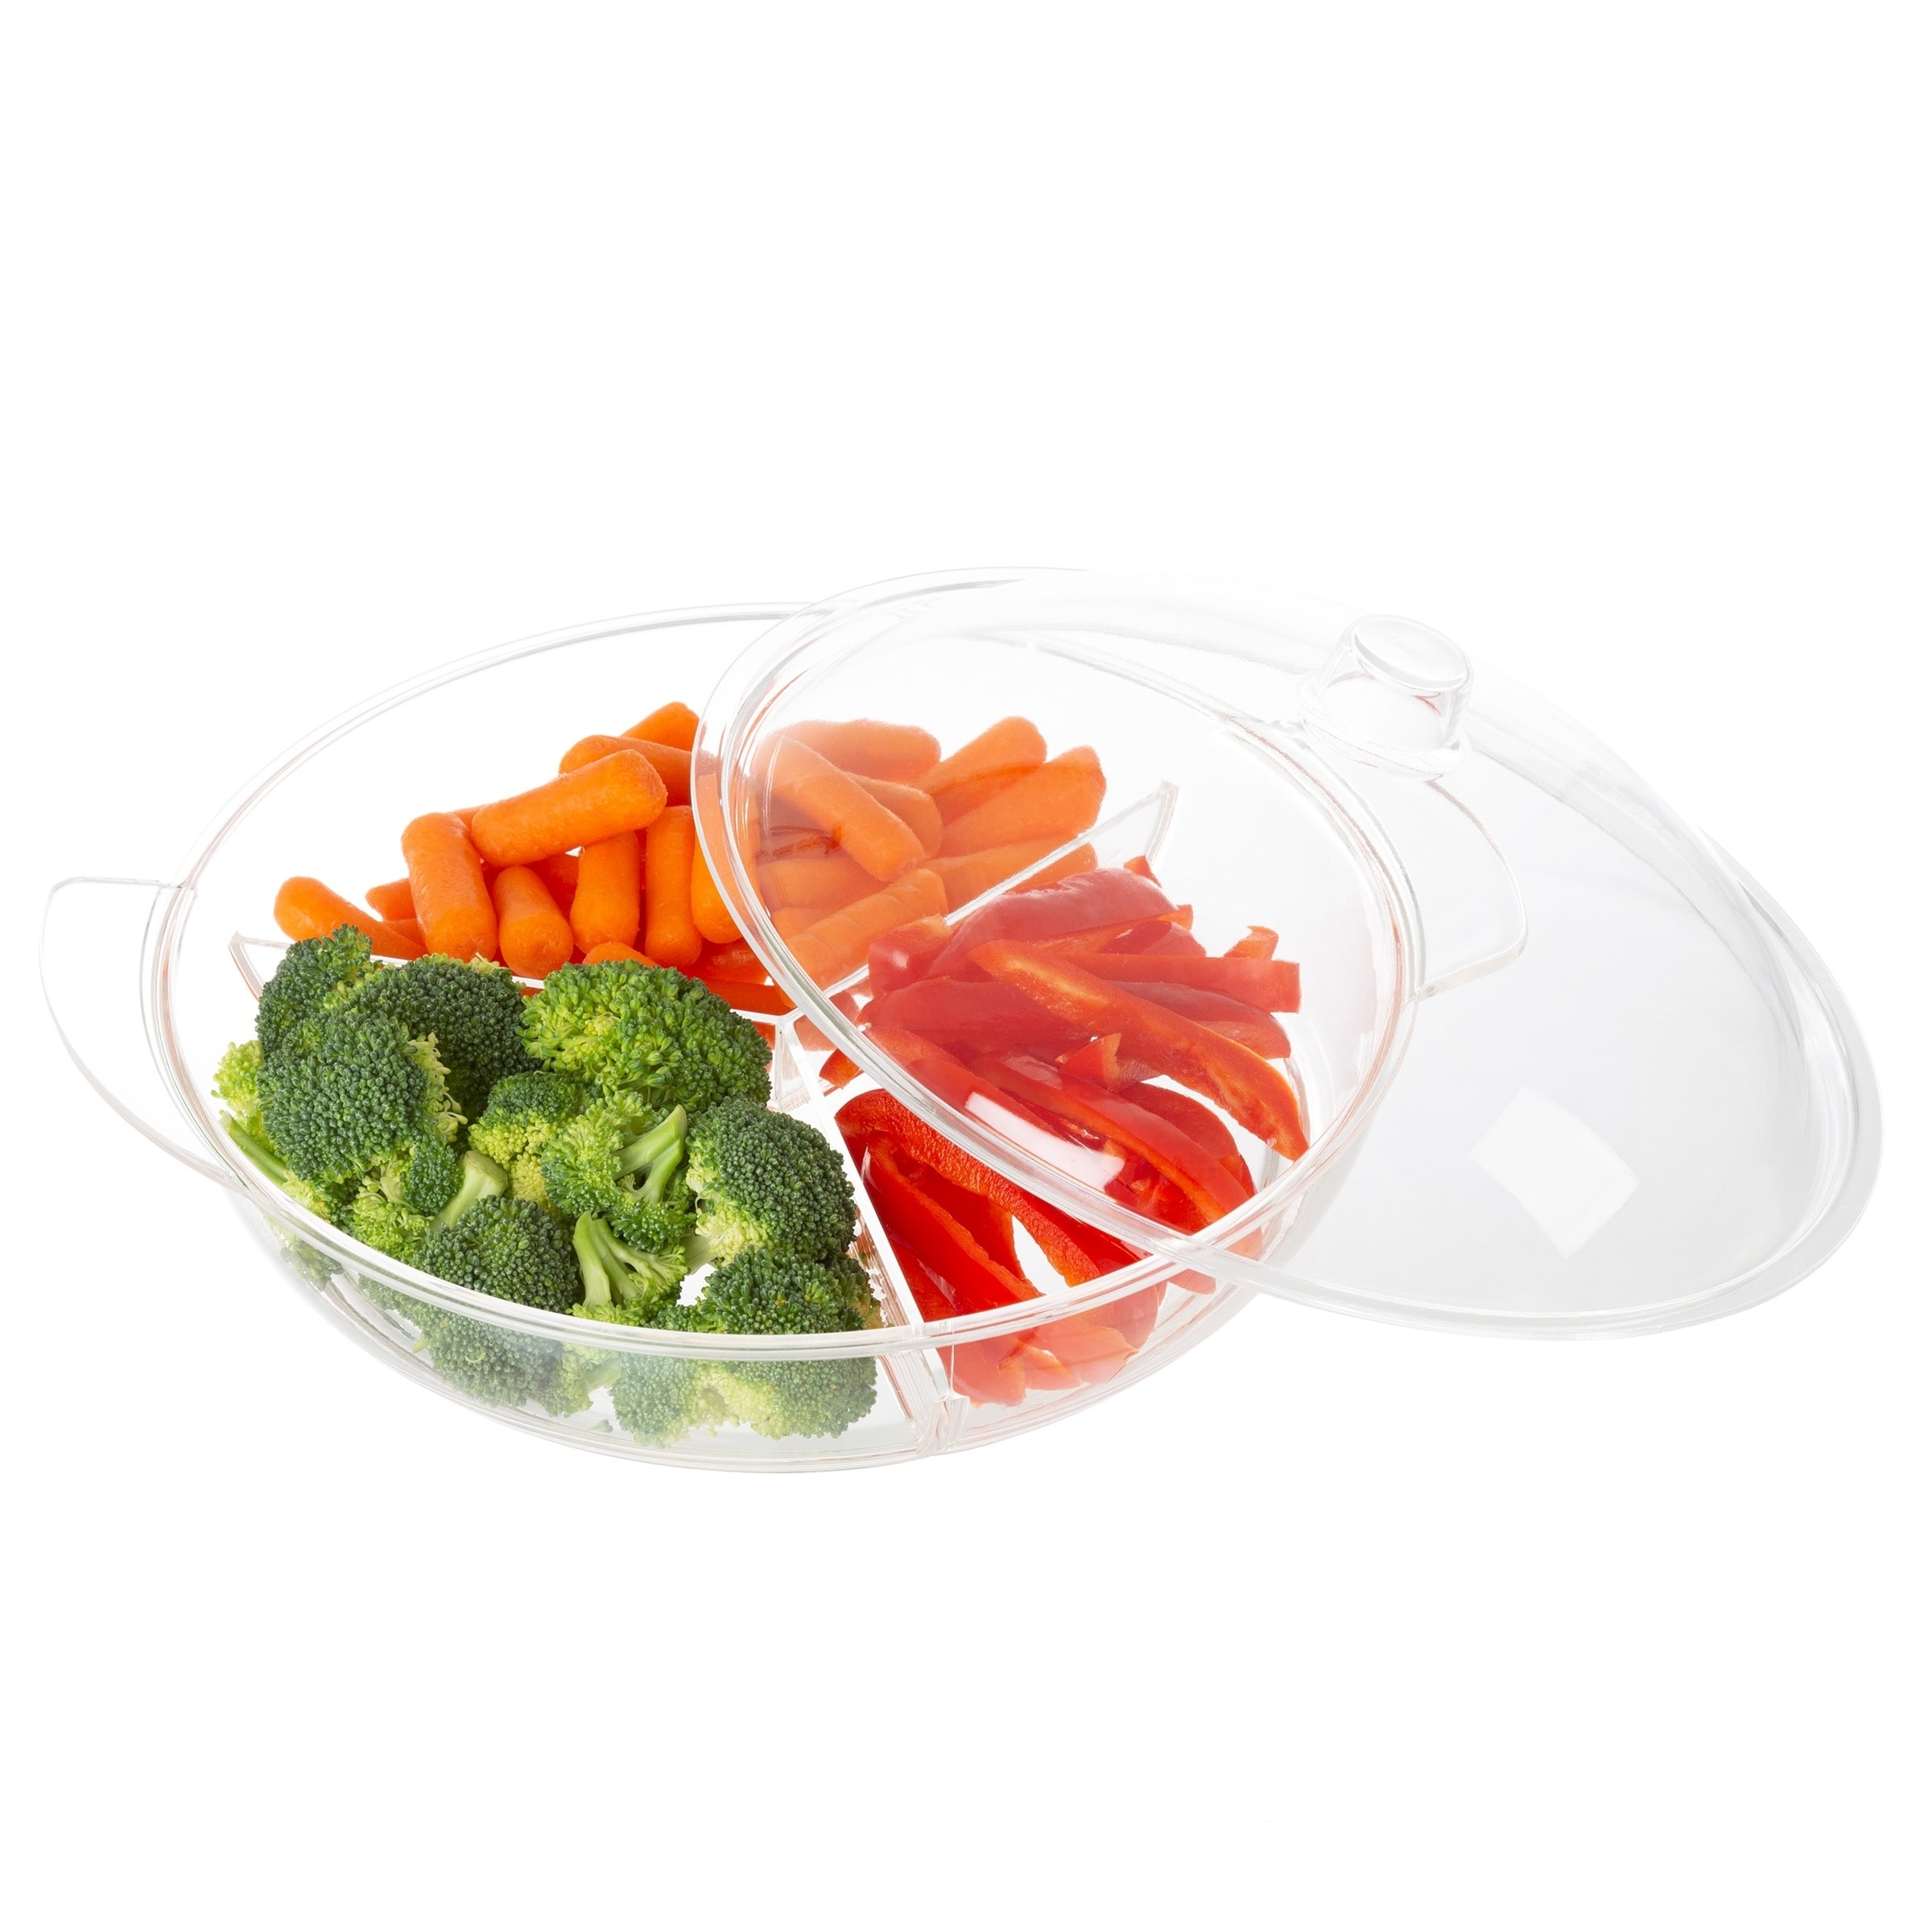 Cold Serving Tray Platter With Ice Chamber Lid And 3 Compartments For Fruit Veggies Cheese More By Clic Cuisine On Free Shipping